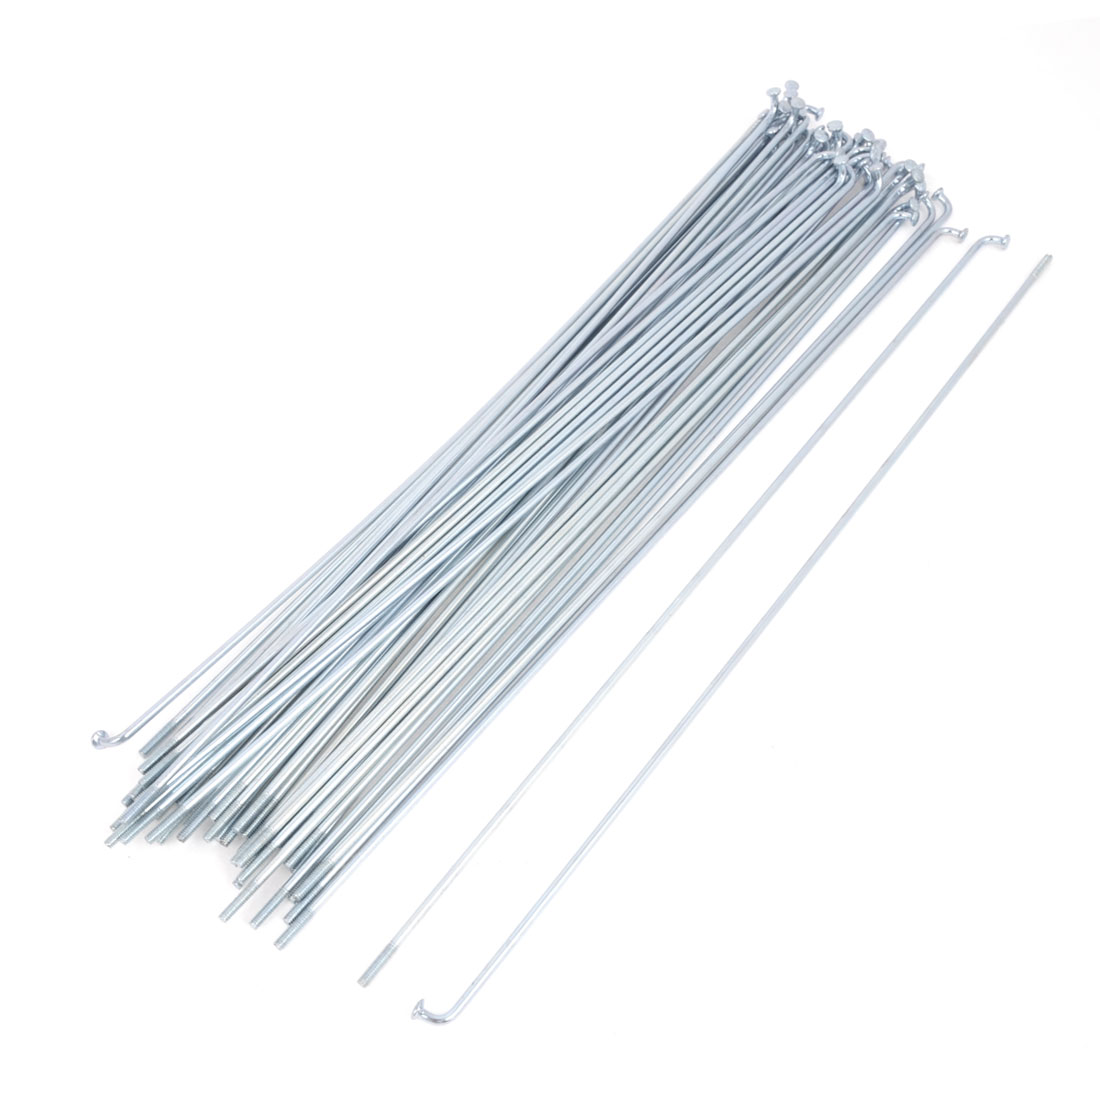 "50 Pcs Silver Tone Metal Cycle Bike Bicycle Spokes 9.4"" Long"